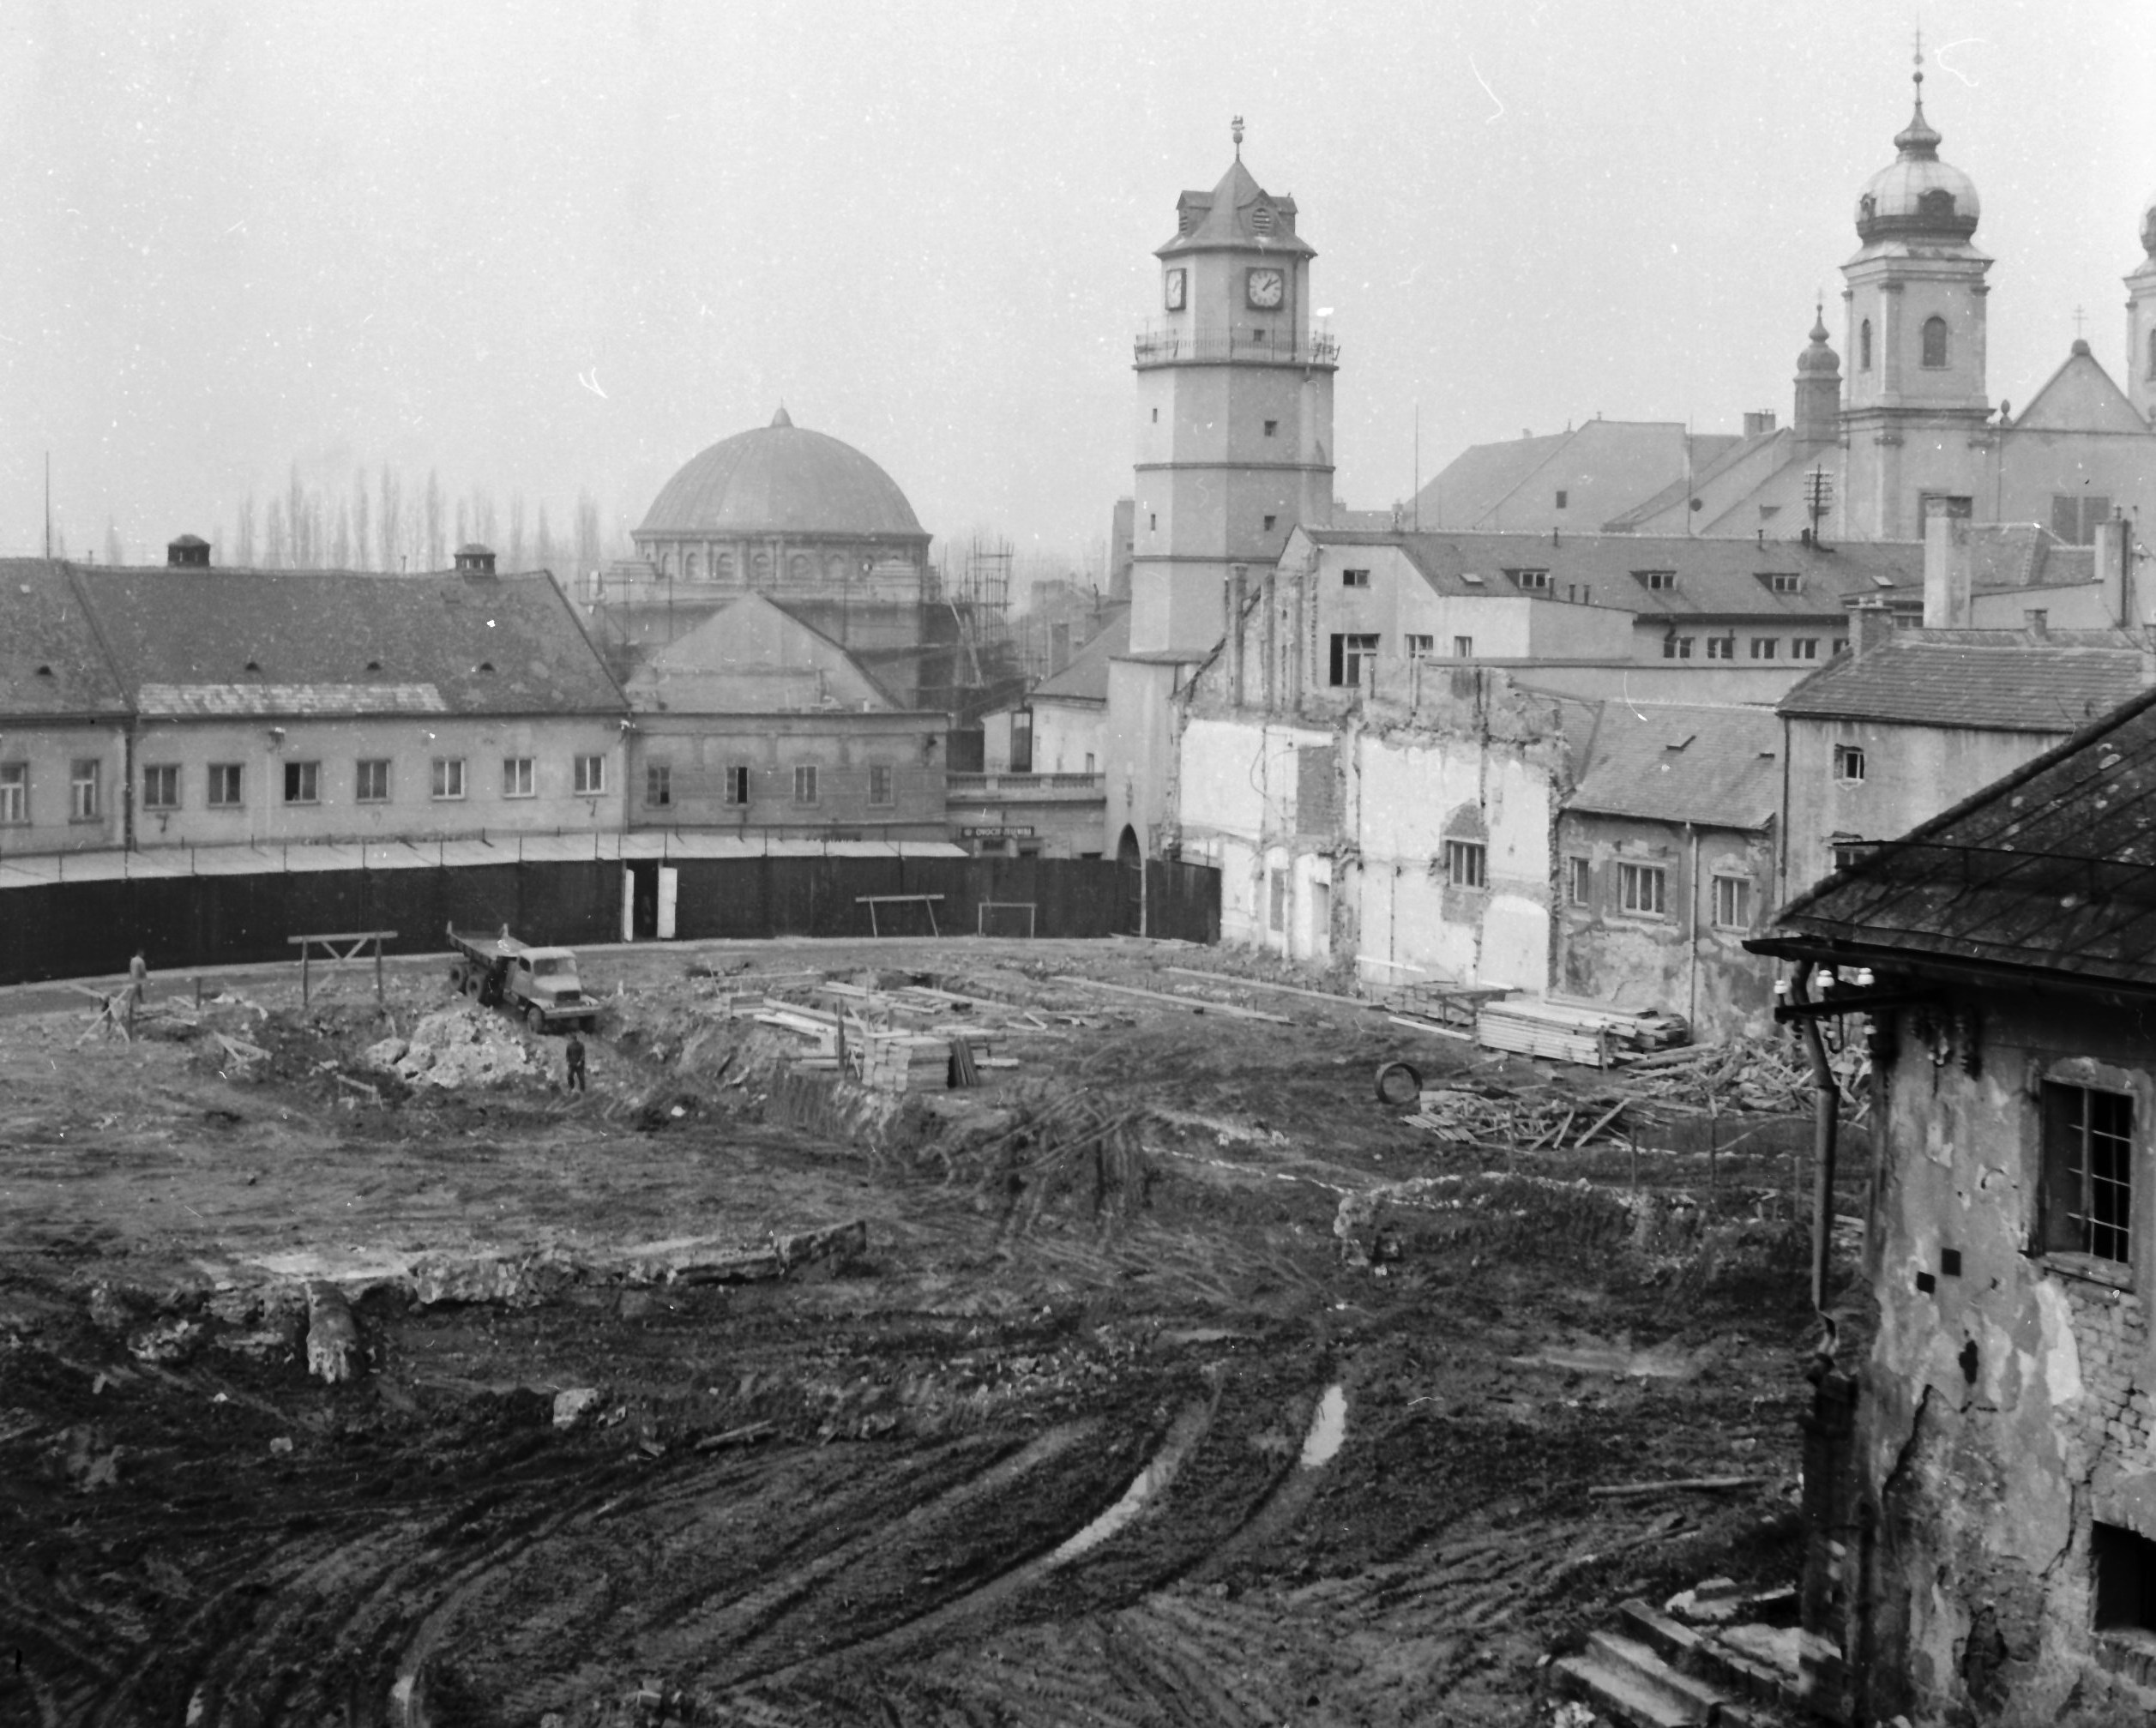 15. All the rubble had been removed by March 1975.